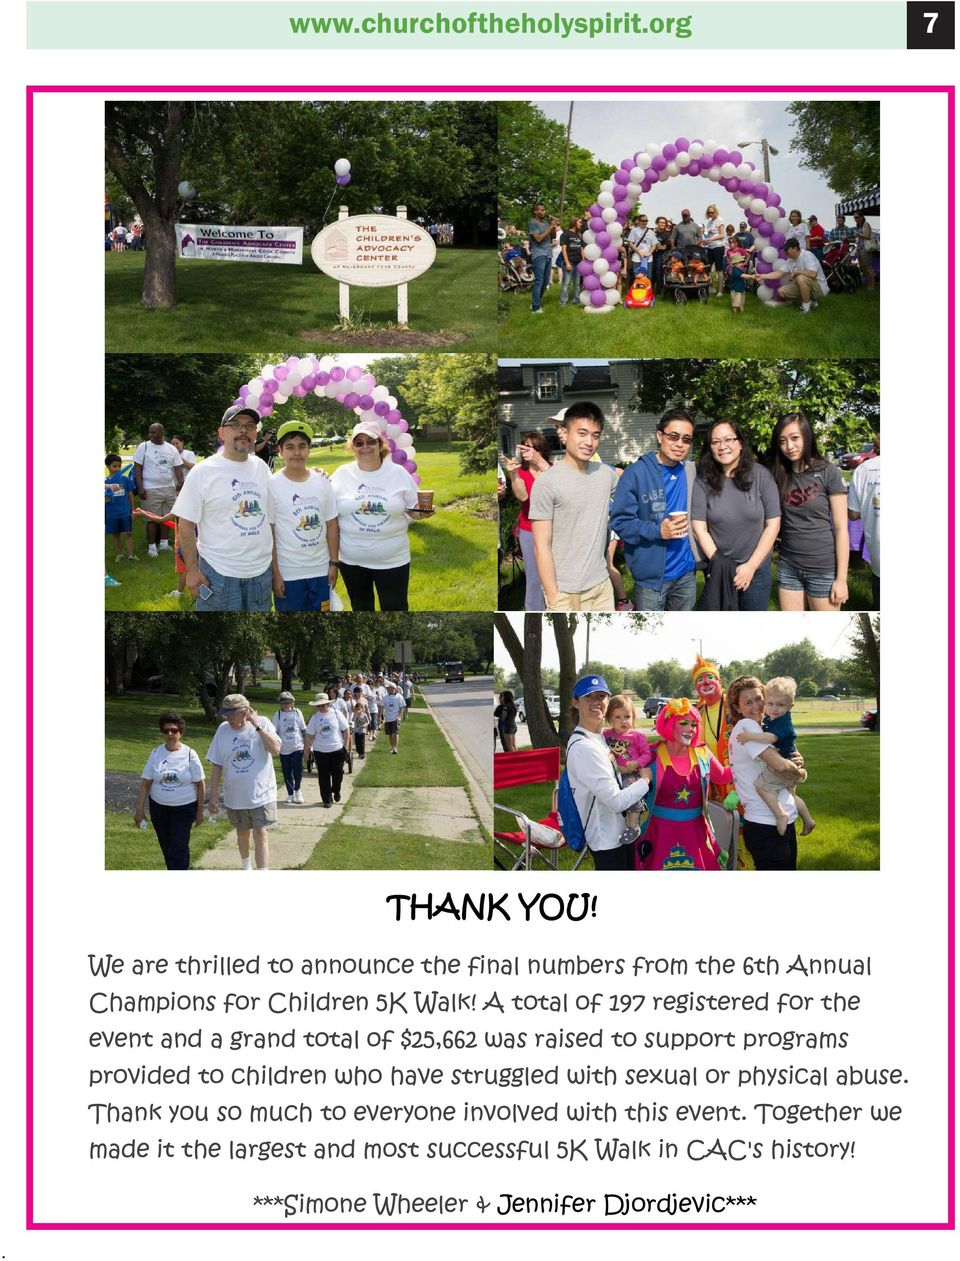 A total of 197 registered for the event and a grand total of $25,662 was raised to support programs provided to children